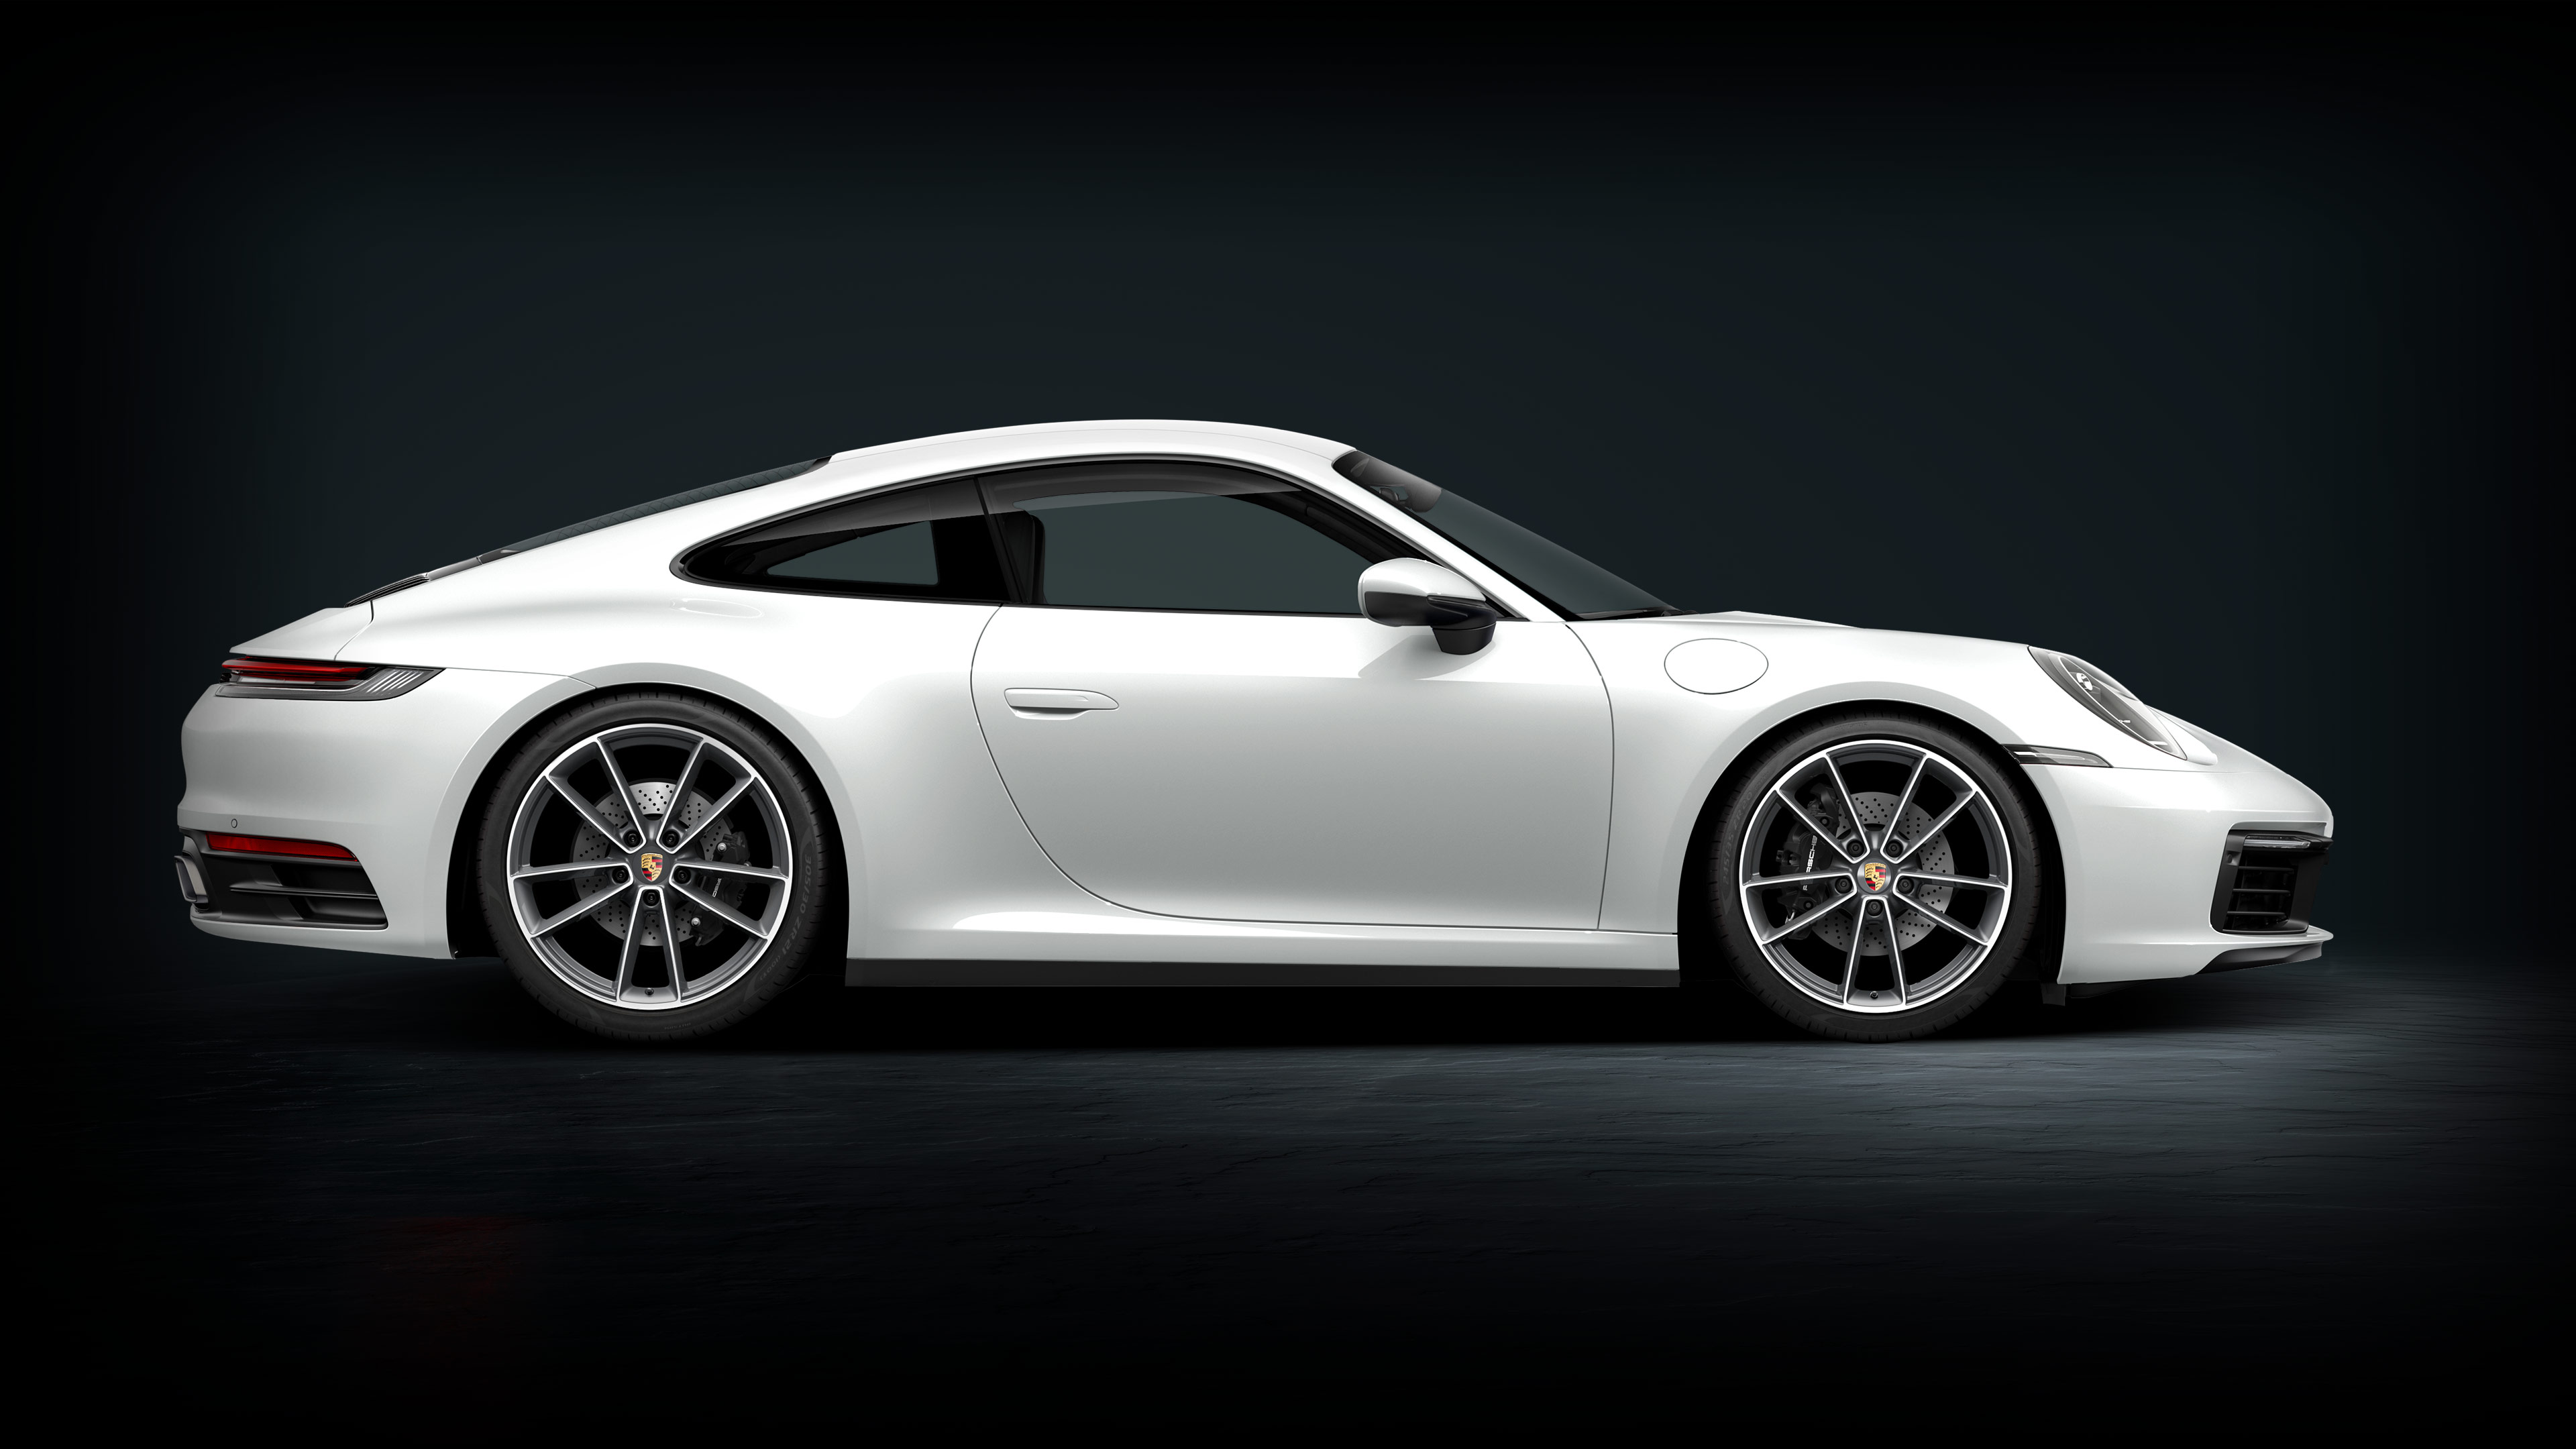 Porsche 911 Carrera 4 - Technical Specs